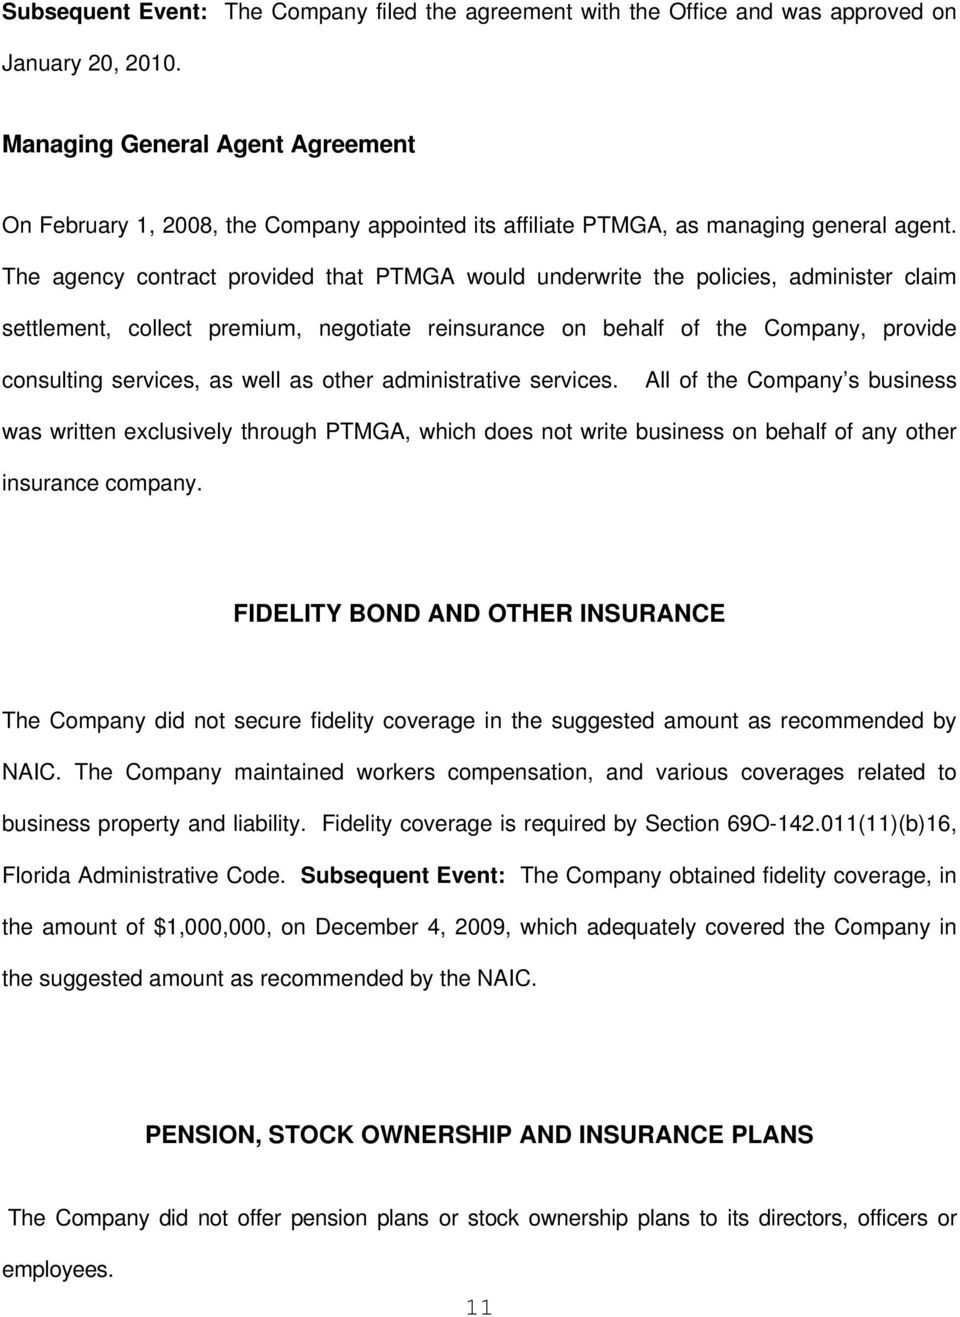 The agency contract provided that PTMGA would underwrite the policies, administer claim settlement, collect premium, negotiate reinsurance on behalf of the Company, provide consulting services, as